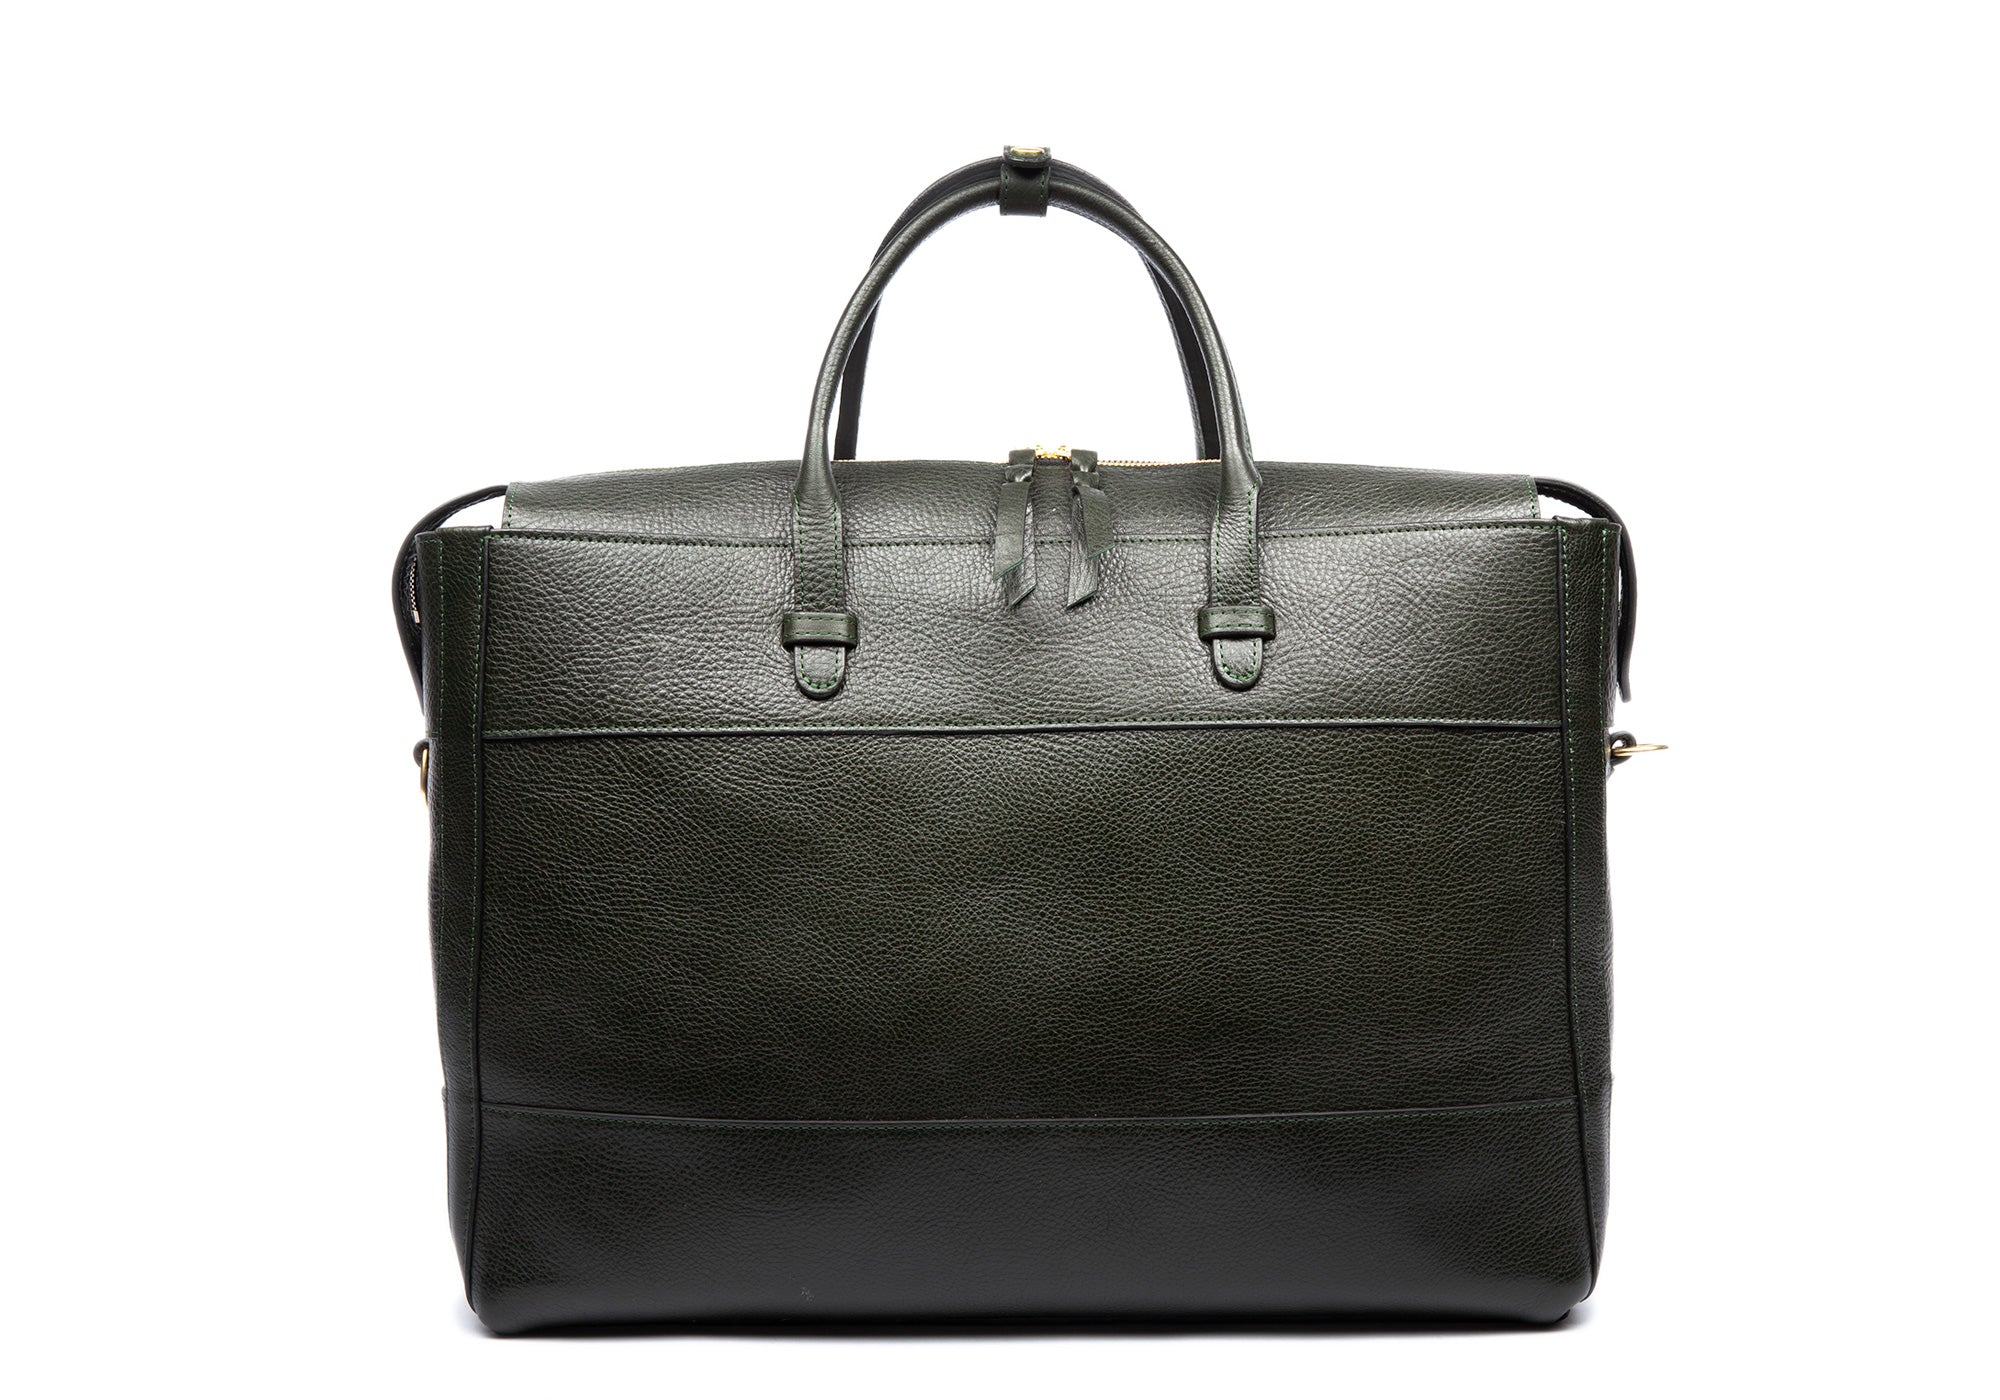 The 929 Briefcase Green